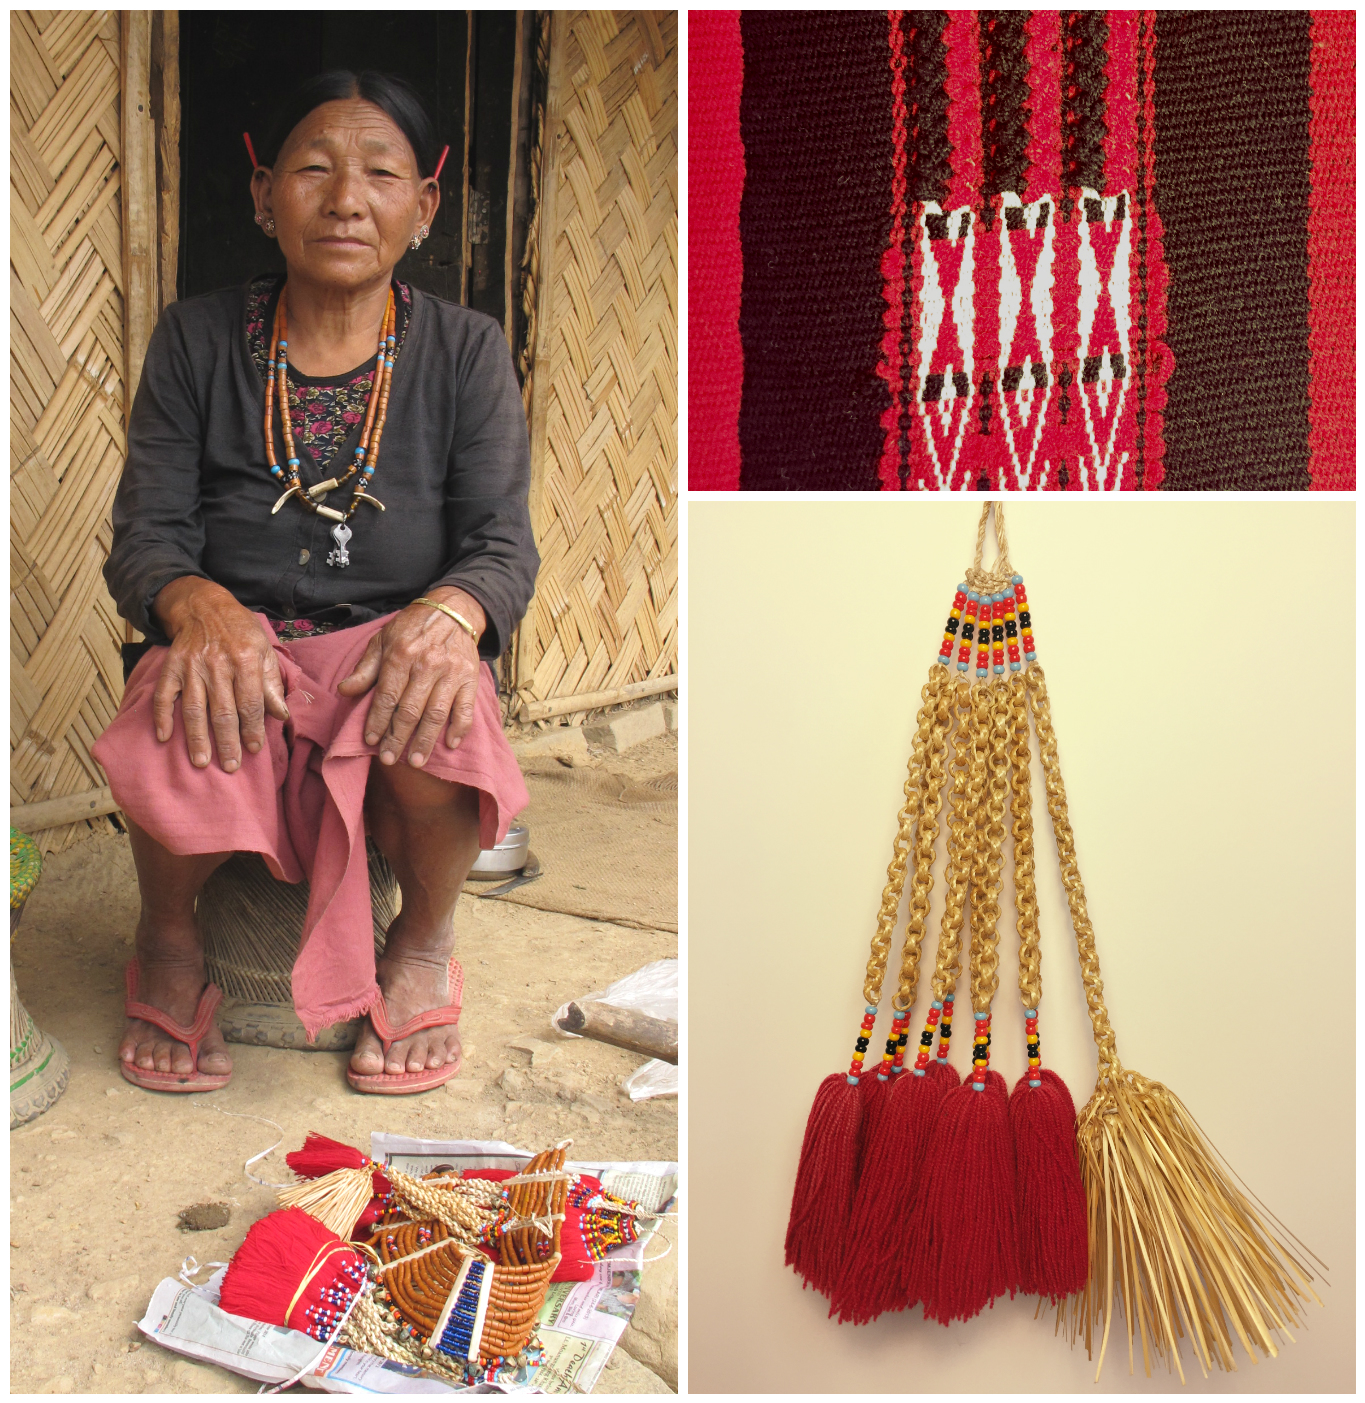 An elder woman of the Hong Phoi village in Nagaland, India, sharing her traditional crafted adornments typically worn for the annual Hornbill Festival.